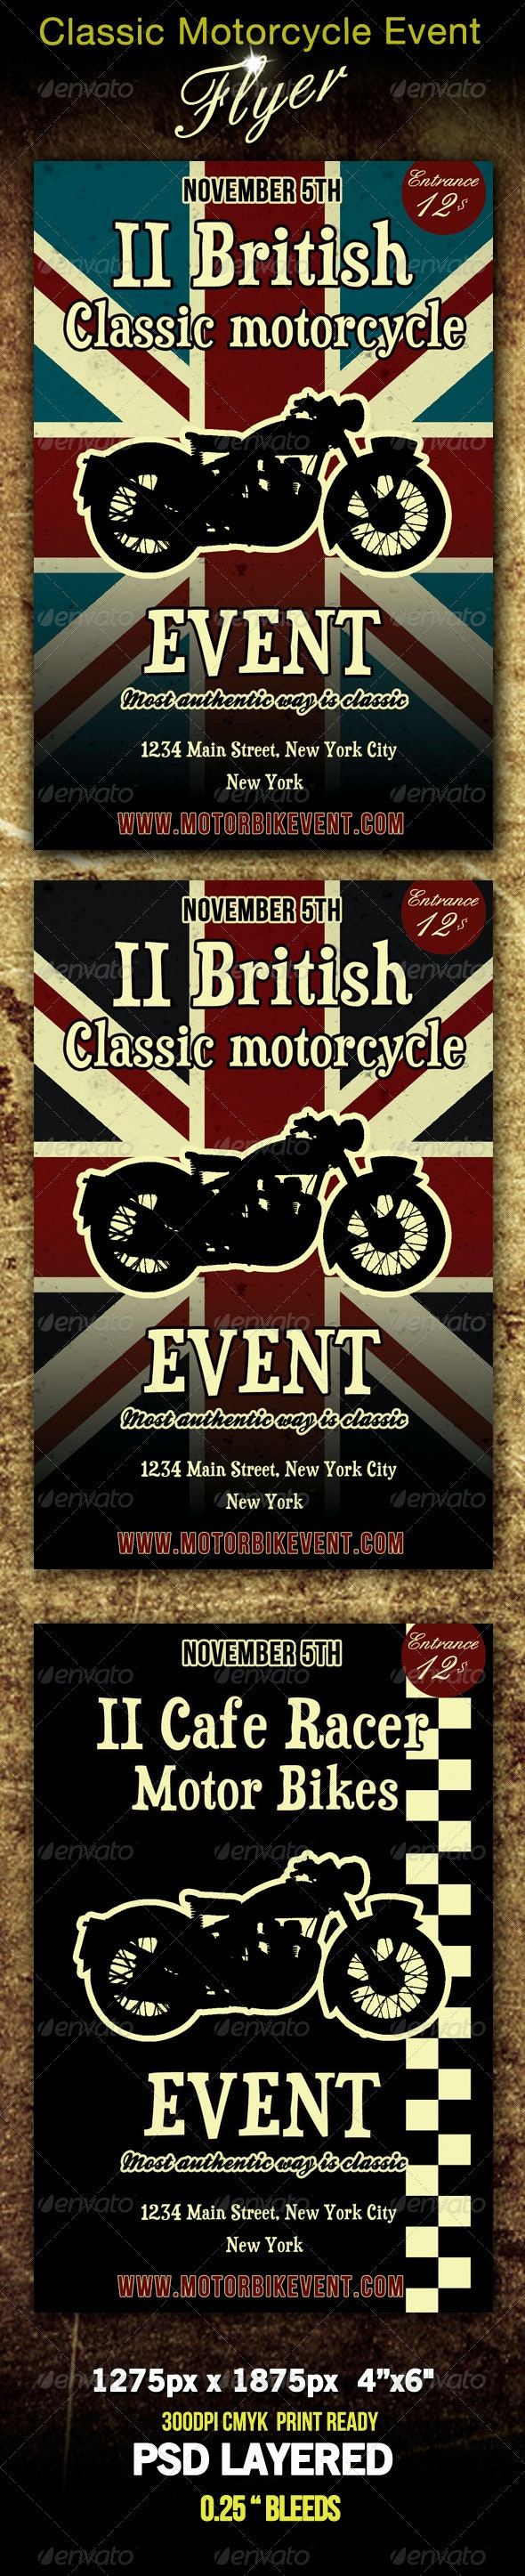 Classic Motorbike Event Flyer - Miscellaneous Events